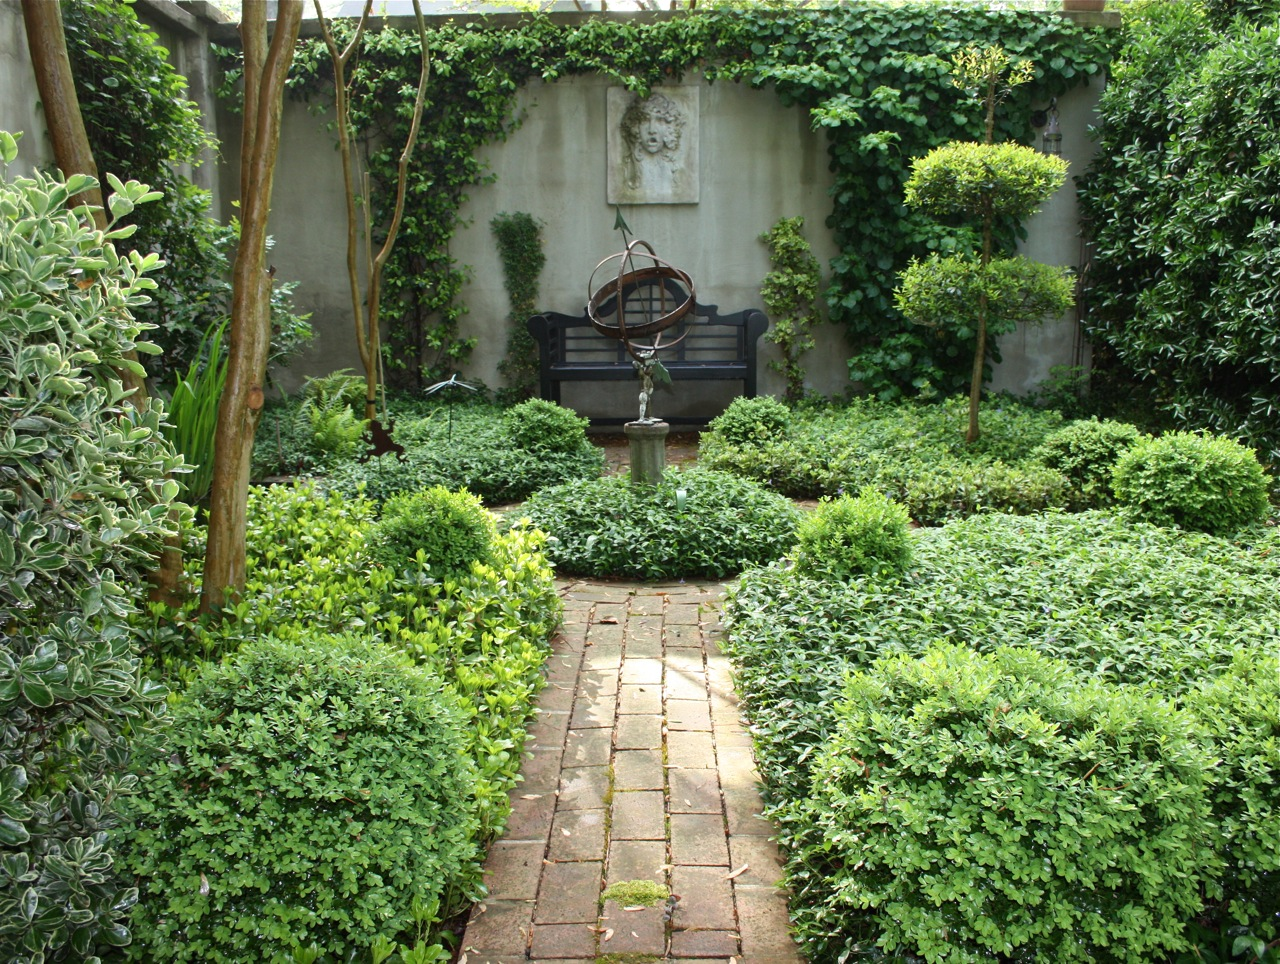 A curious gardener southern courtyard gardens for Small front courtyard design ideas